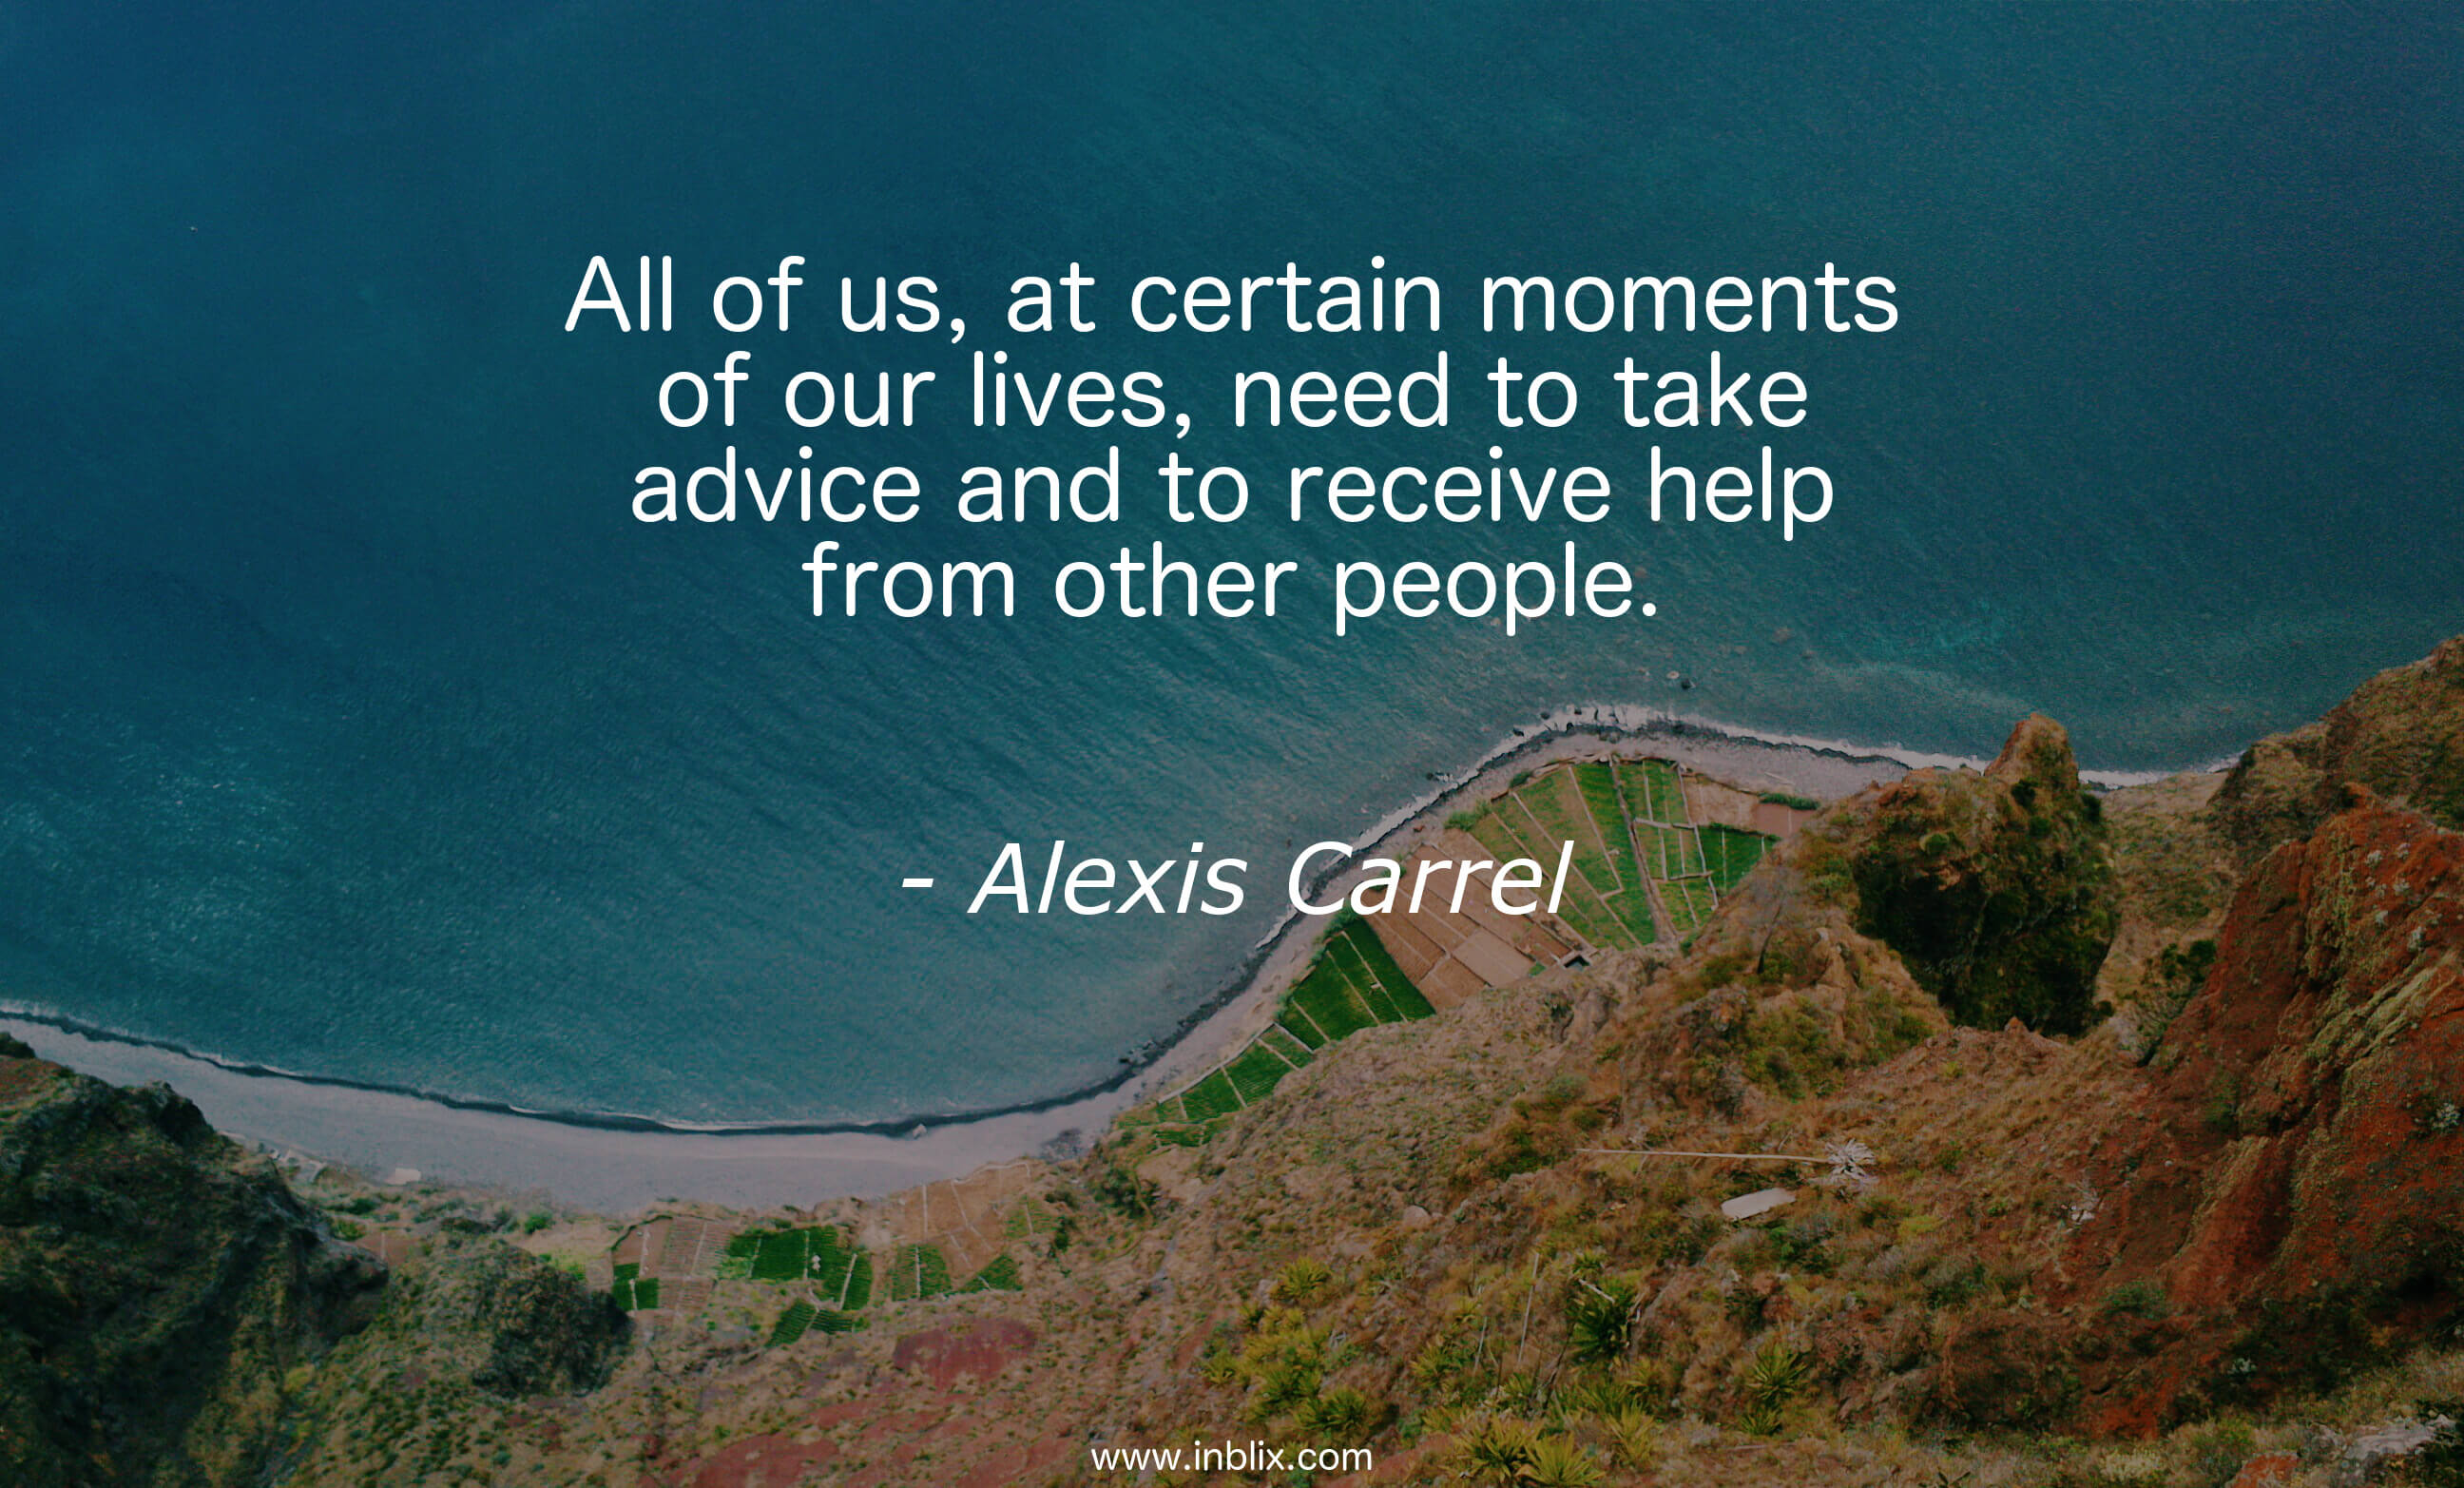 All of us, at certain moments of our lives, need to take advice and to receive help from other people.